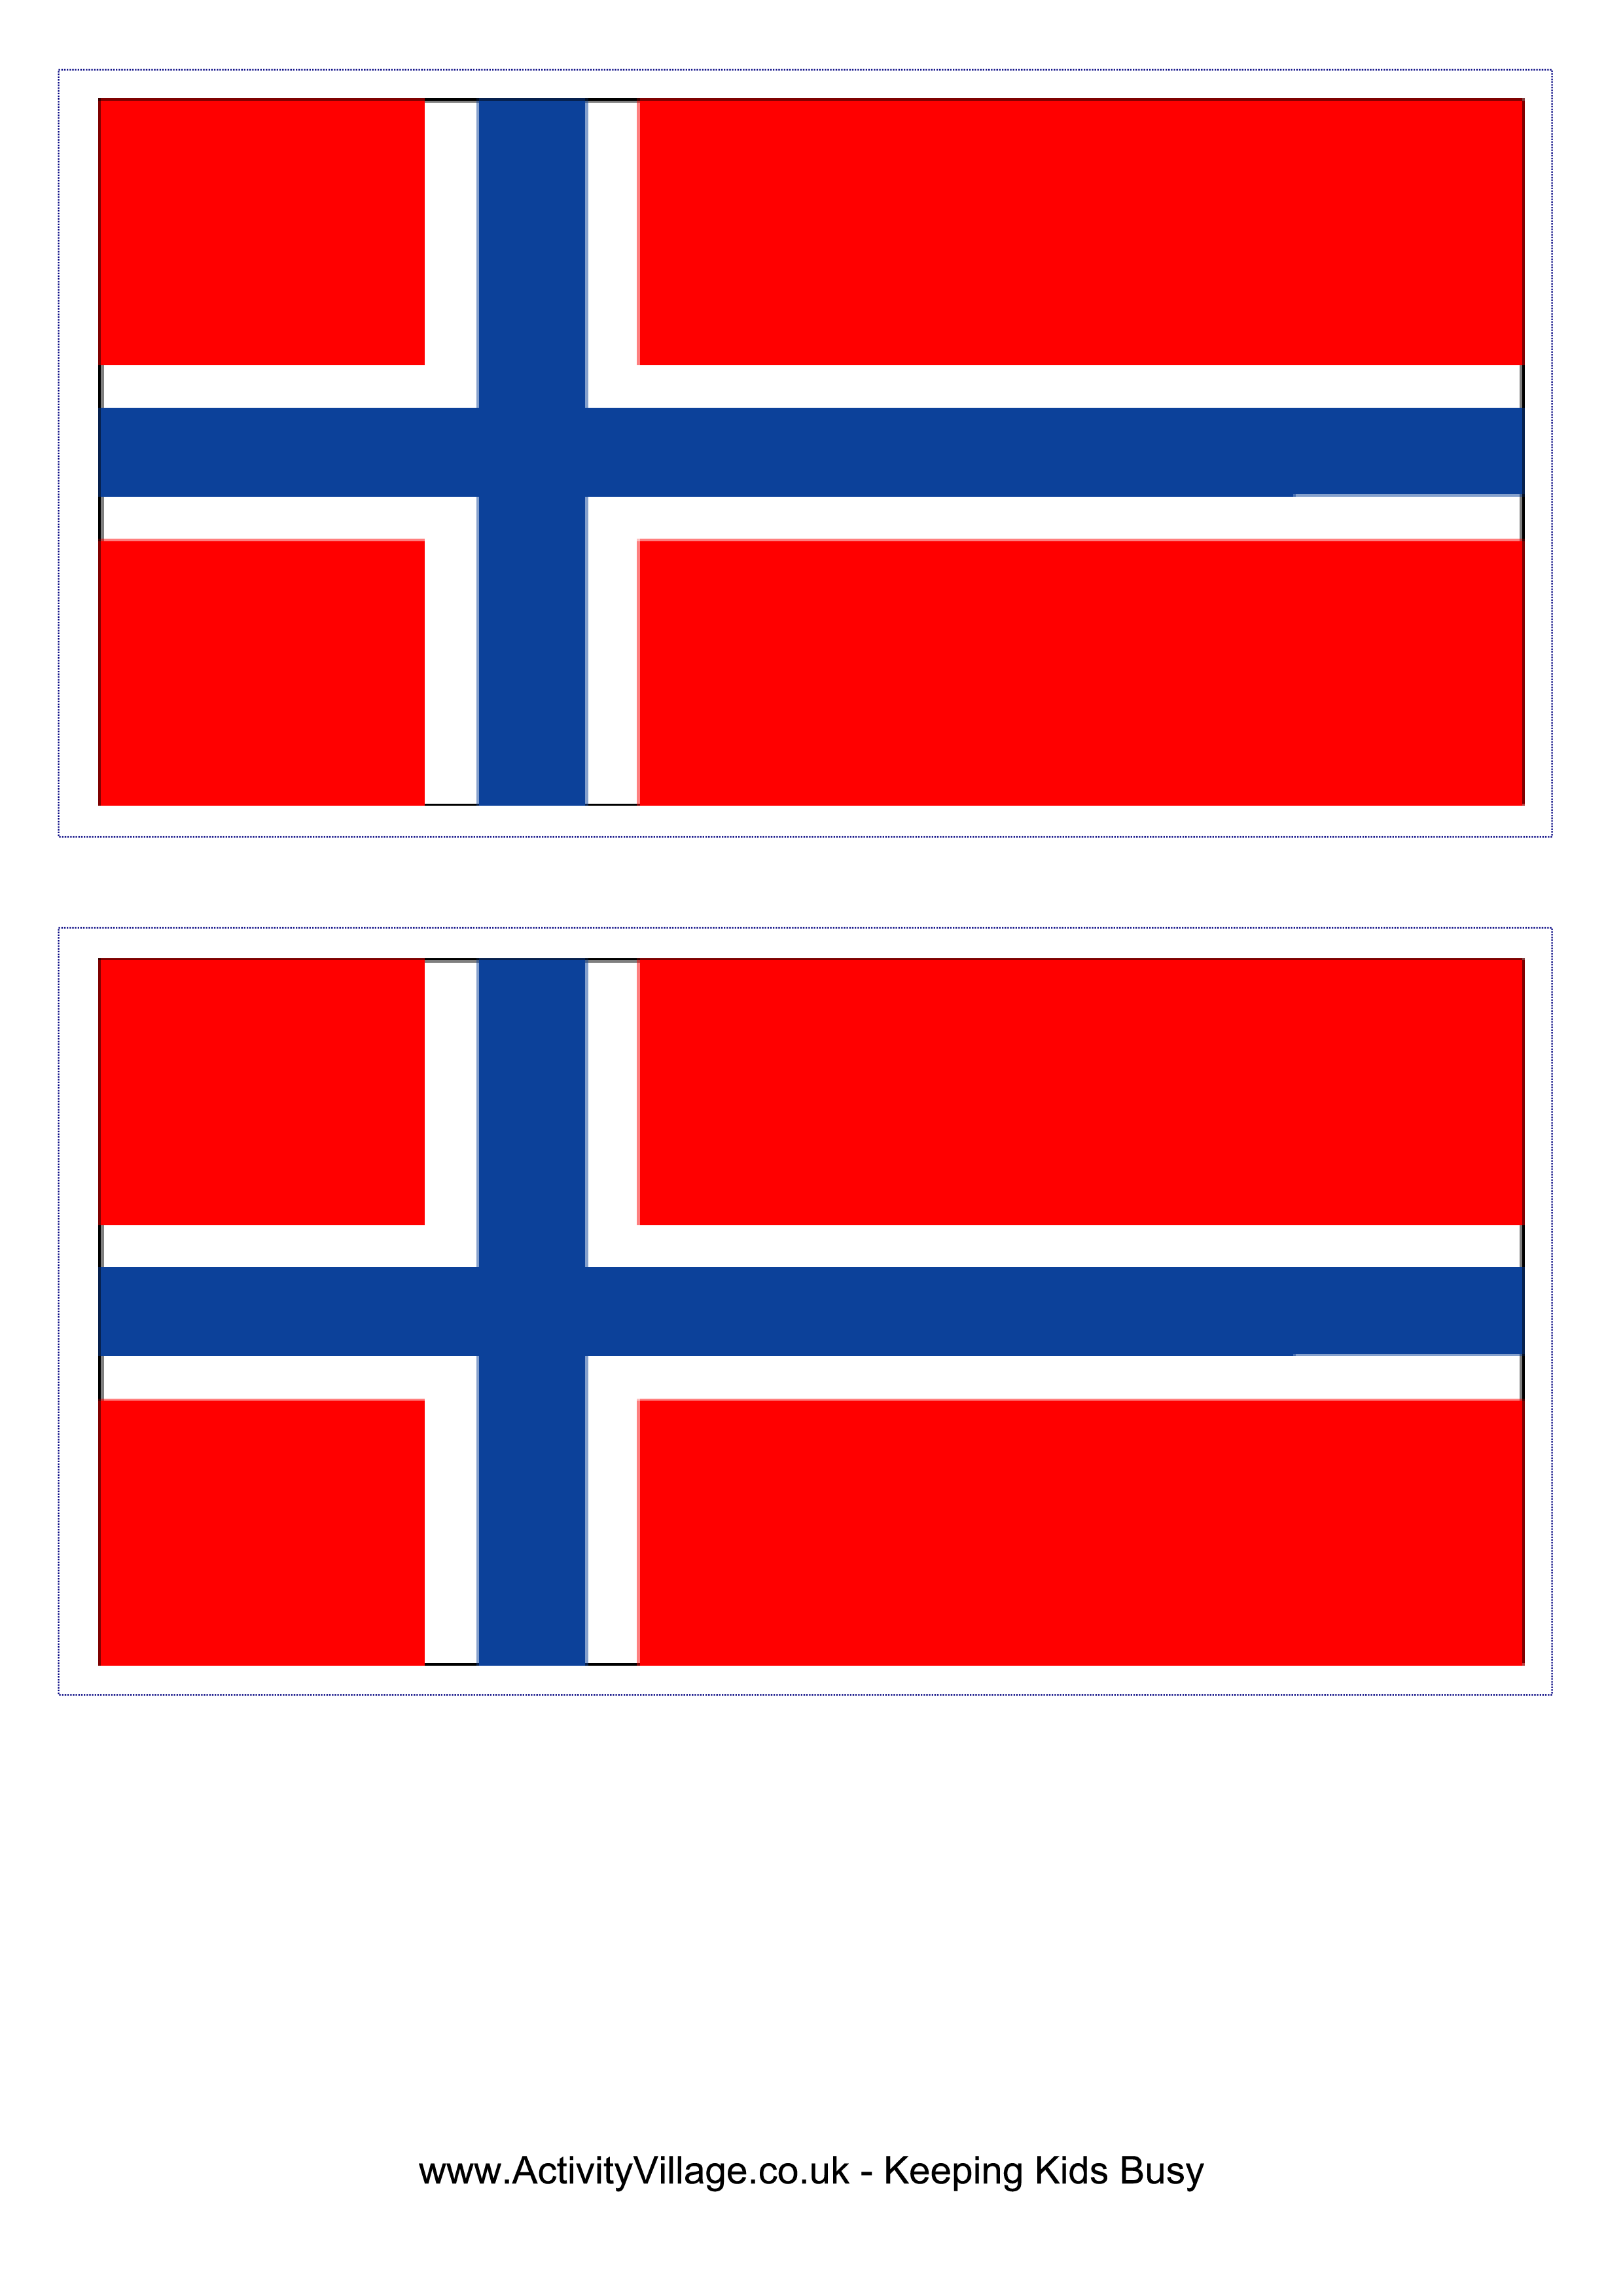 Norwegian download this free. Festival clipart string flag